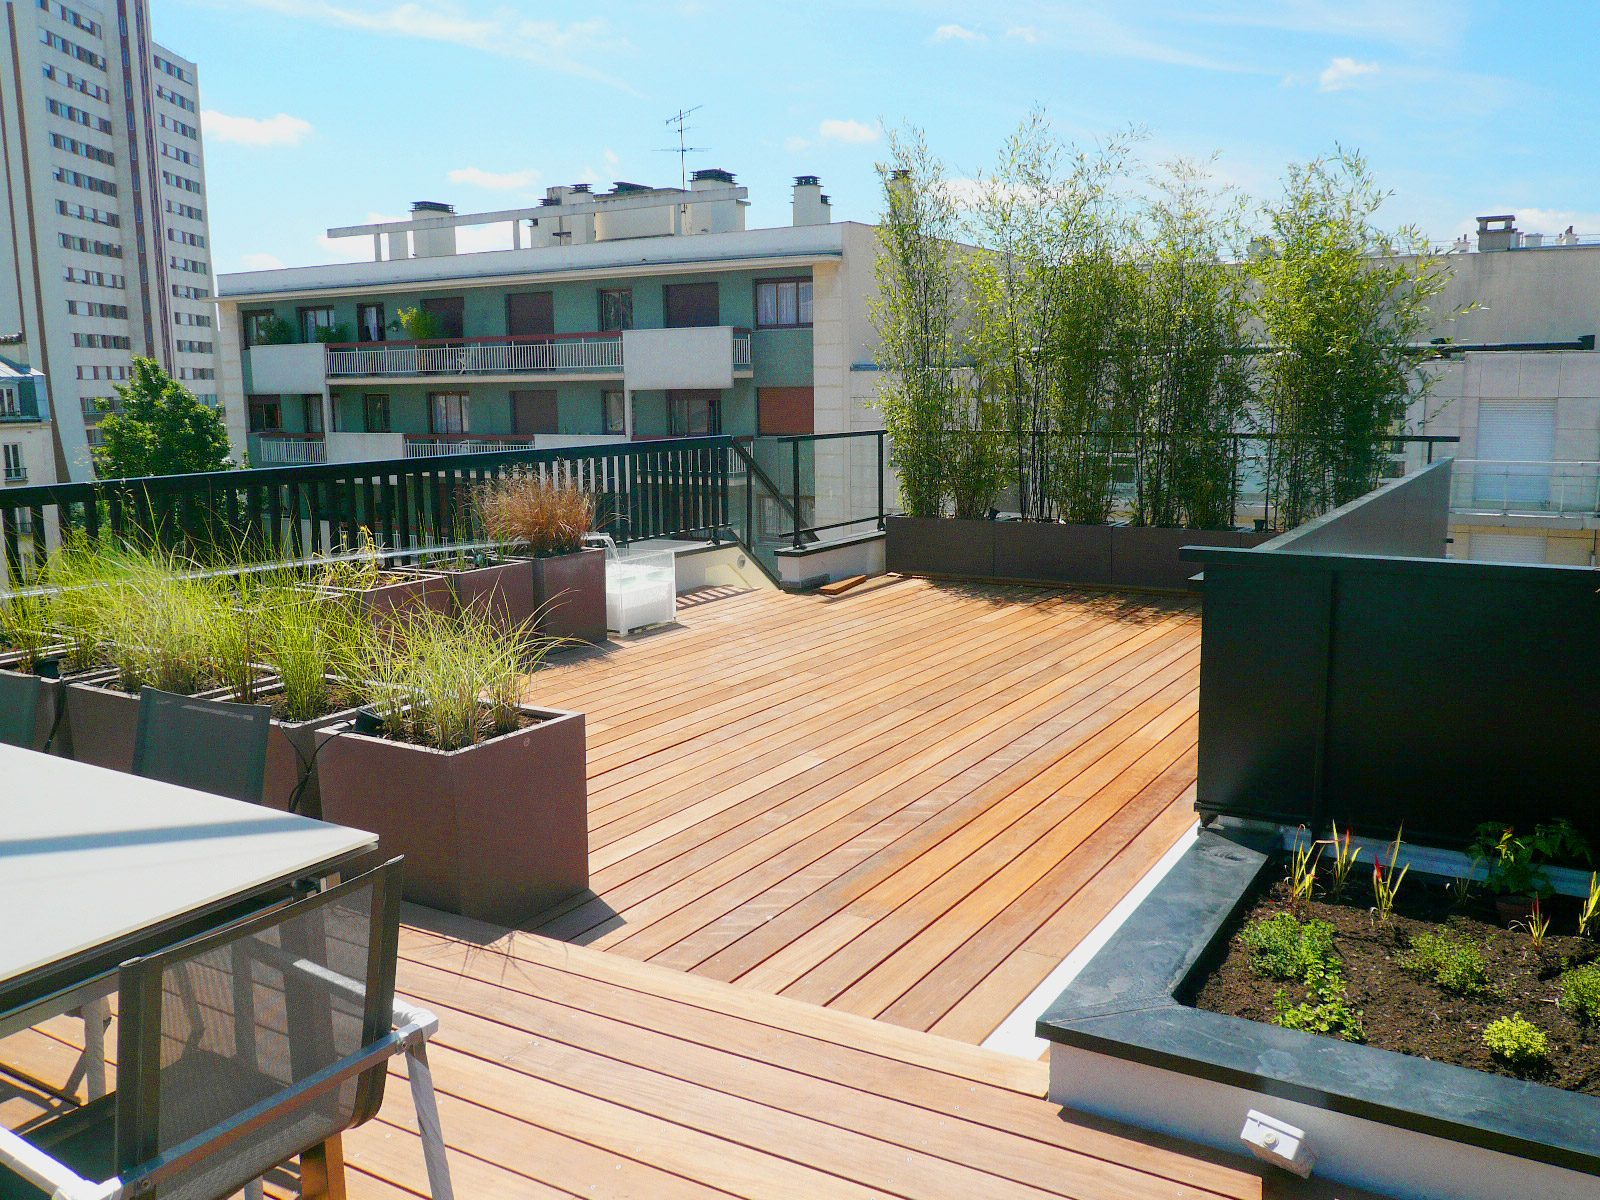 Amnagement paysager terrasse amenagement exterieur maison for Logiciel amenagement piscine